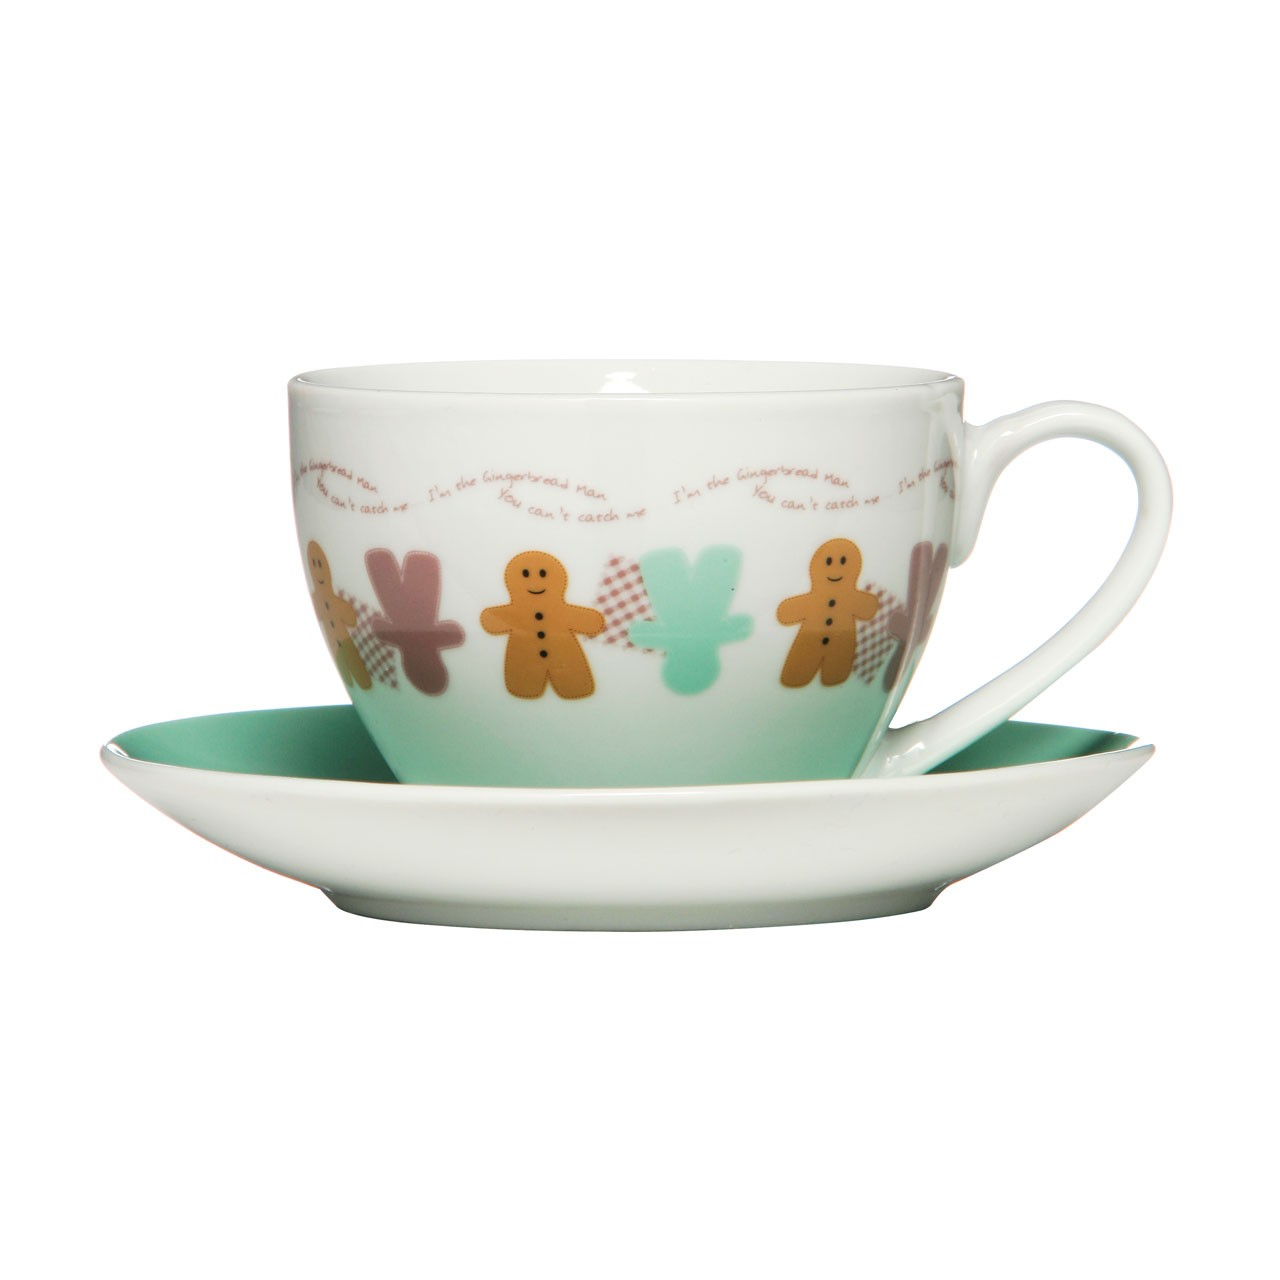 Gingerbread Man Cup And Saucer, Porcelain - 250ml - Set Of 2